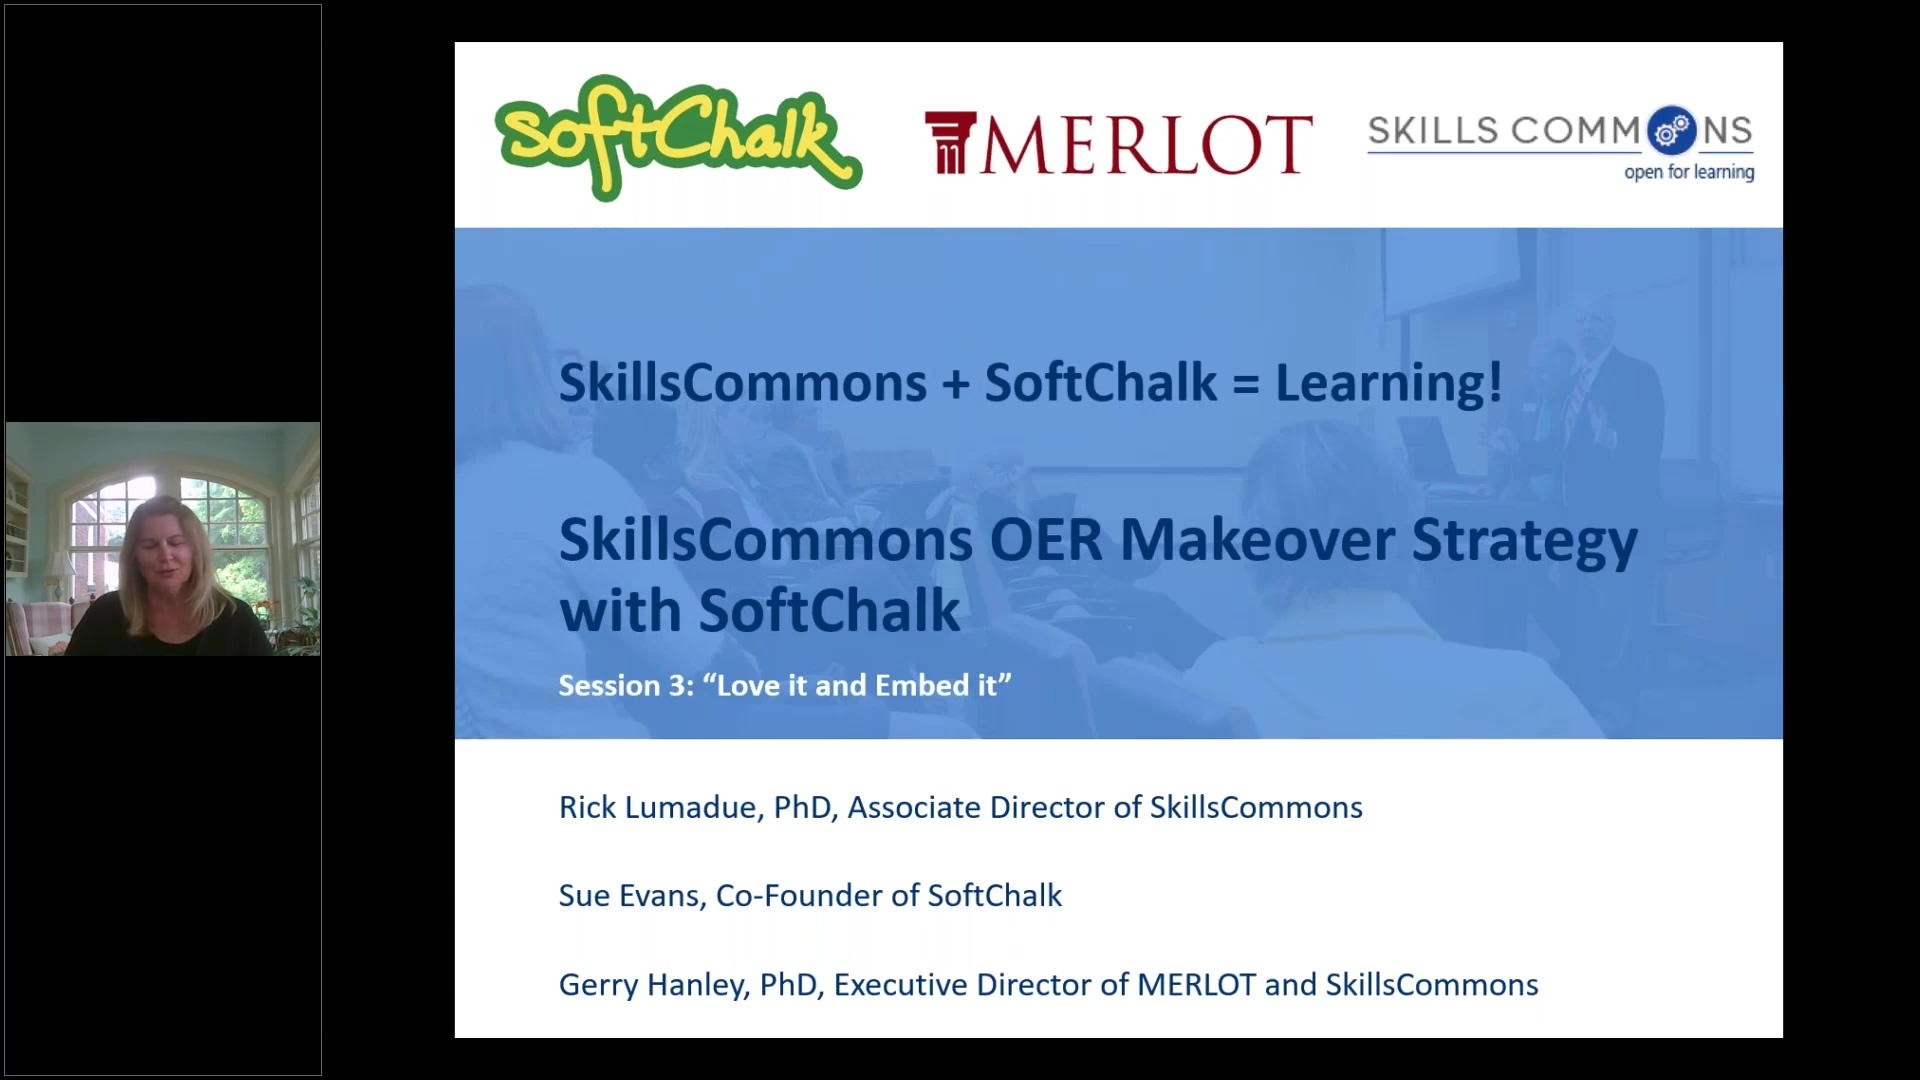 SkillsCommons OER Makeover Strategy with SoftChalk-4